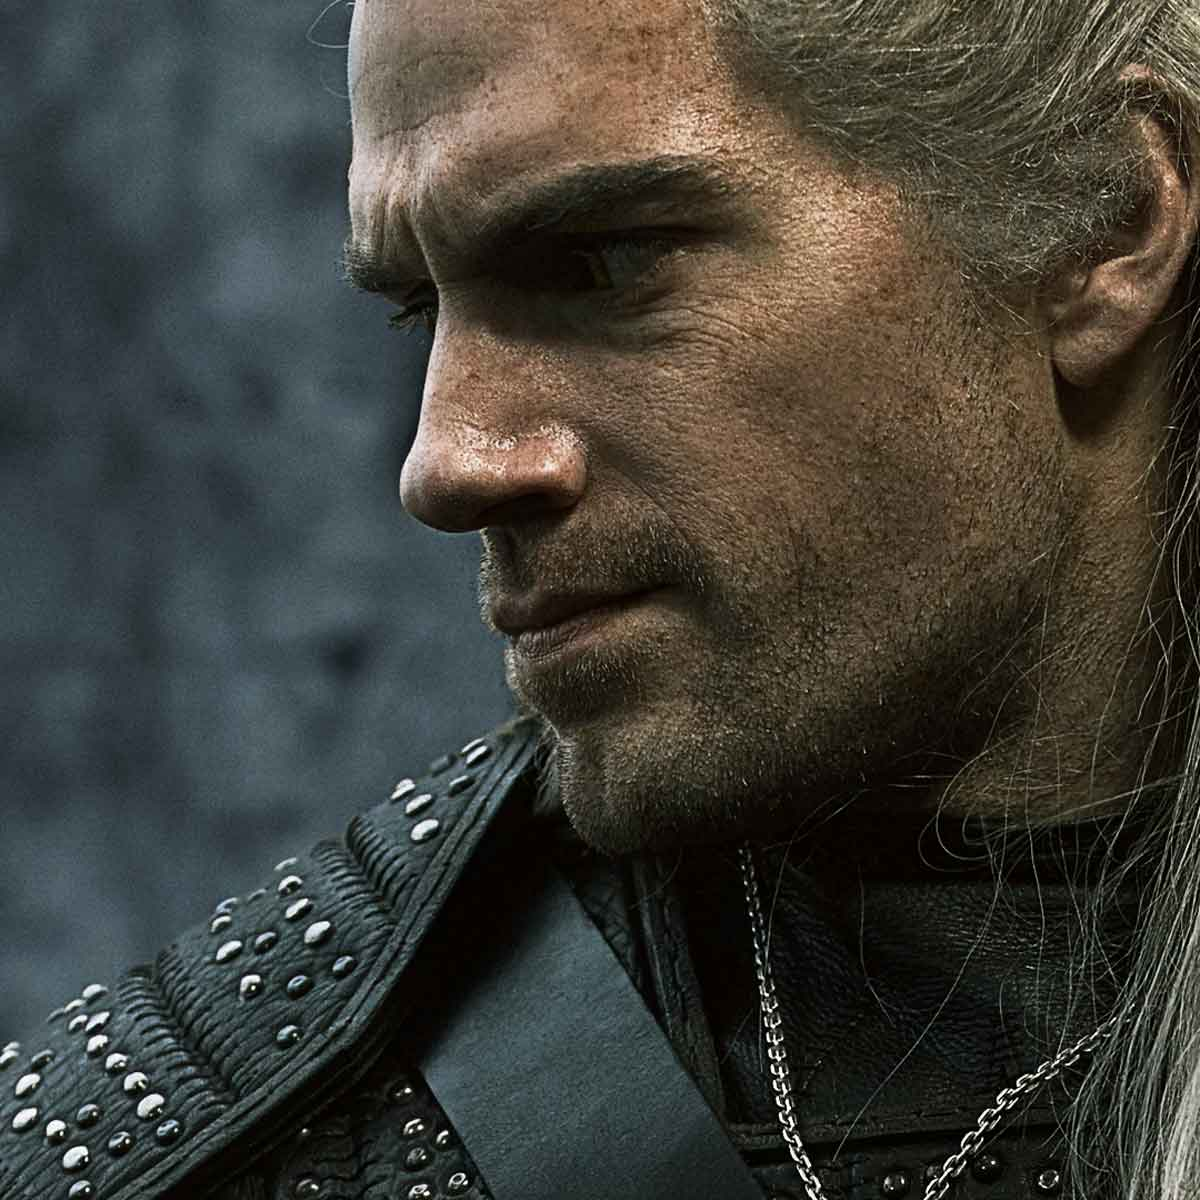 The Witcher de Netflix cambiará aspectos importantes de la historia